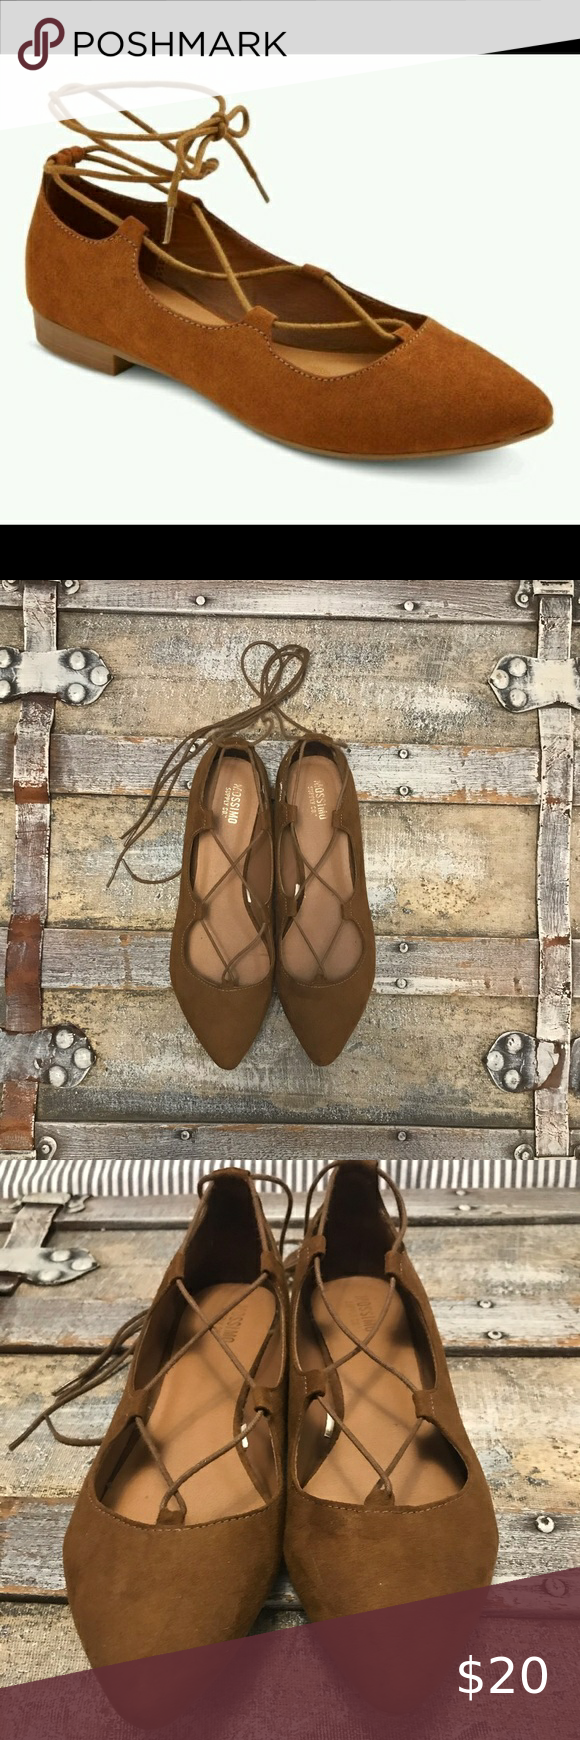 Mossimo lace up flats in 2020 | Lace up